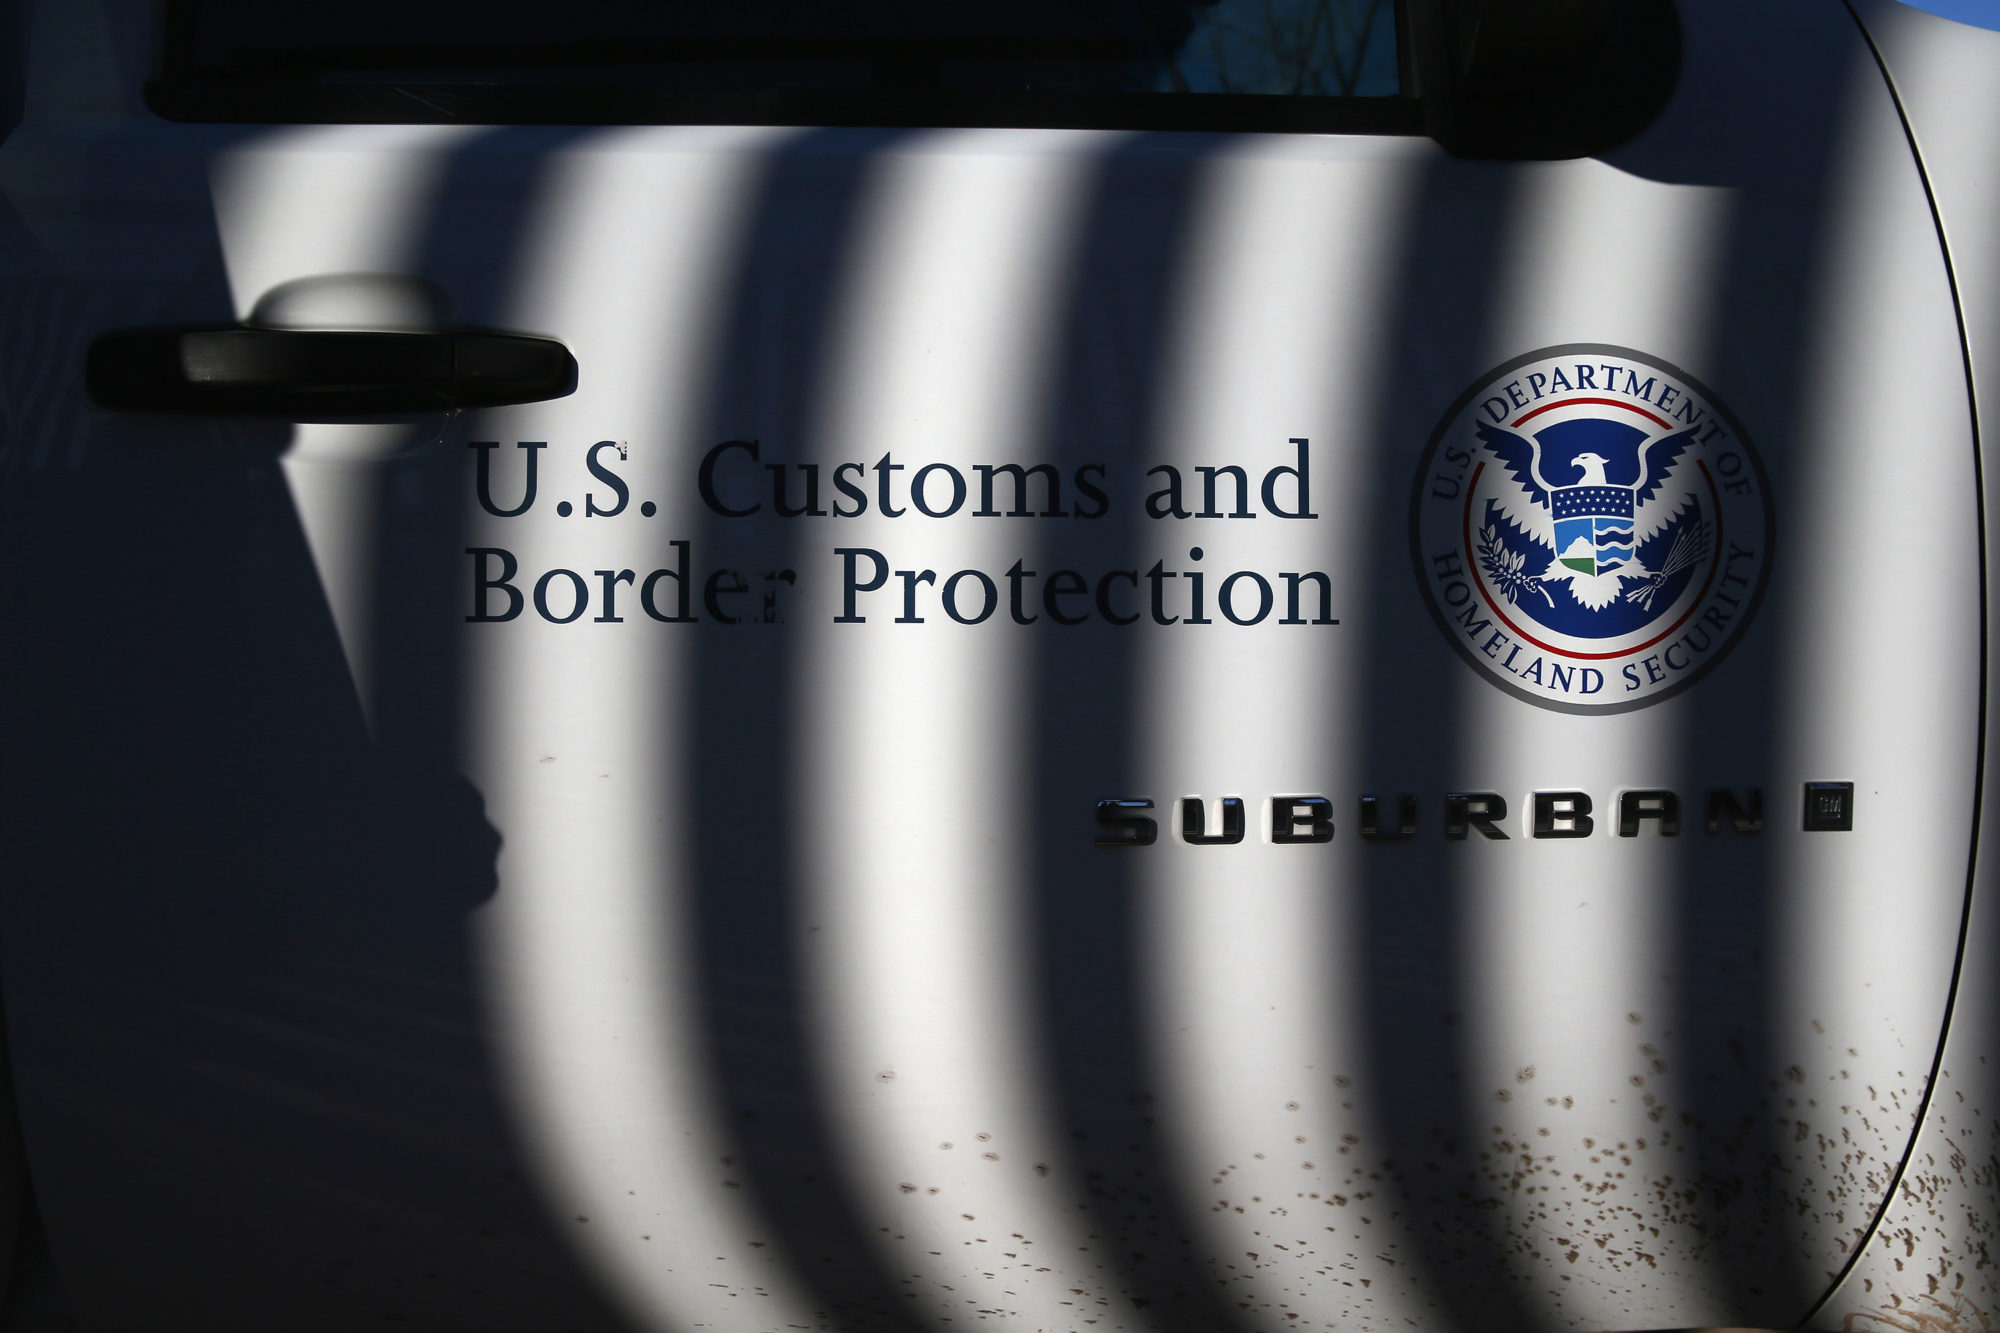 """""""Dirtbag,"""" """"Savages,"""" """"Subhuman"""": A Border Agent's Hateful Career and the Crime That Finally Ended It"""